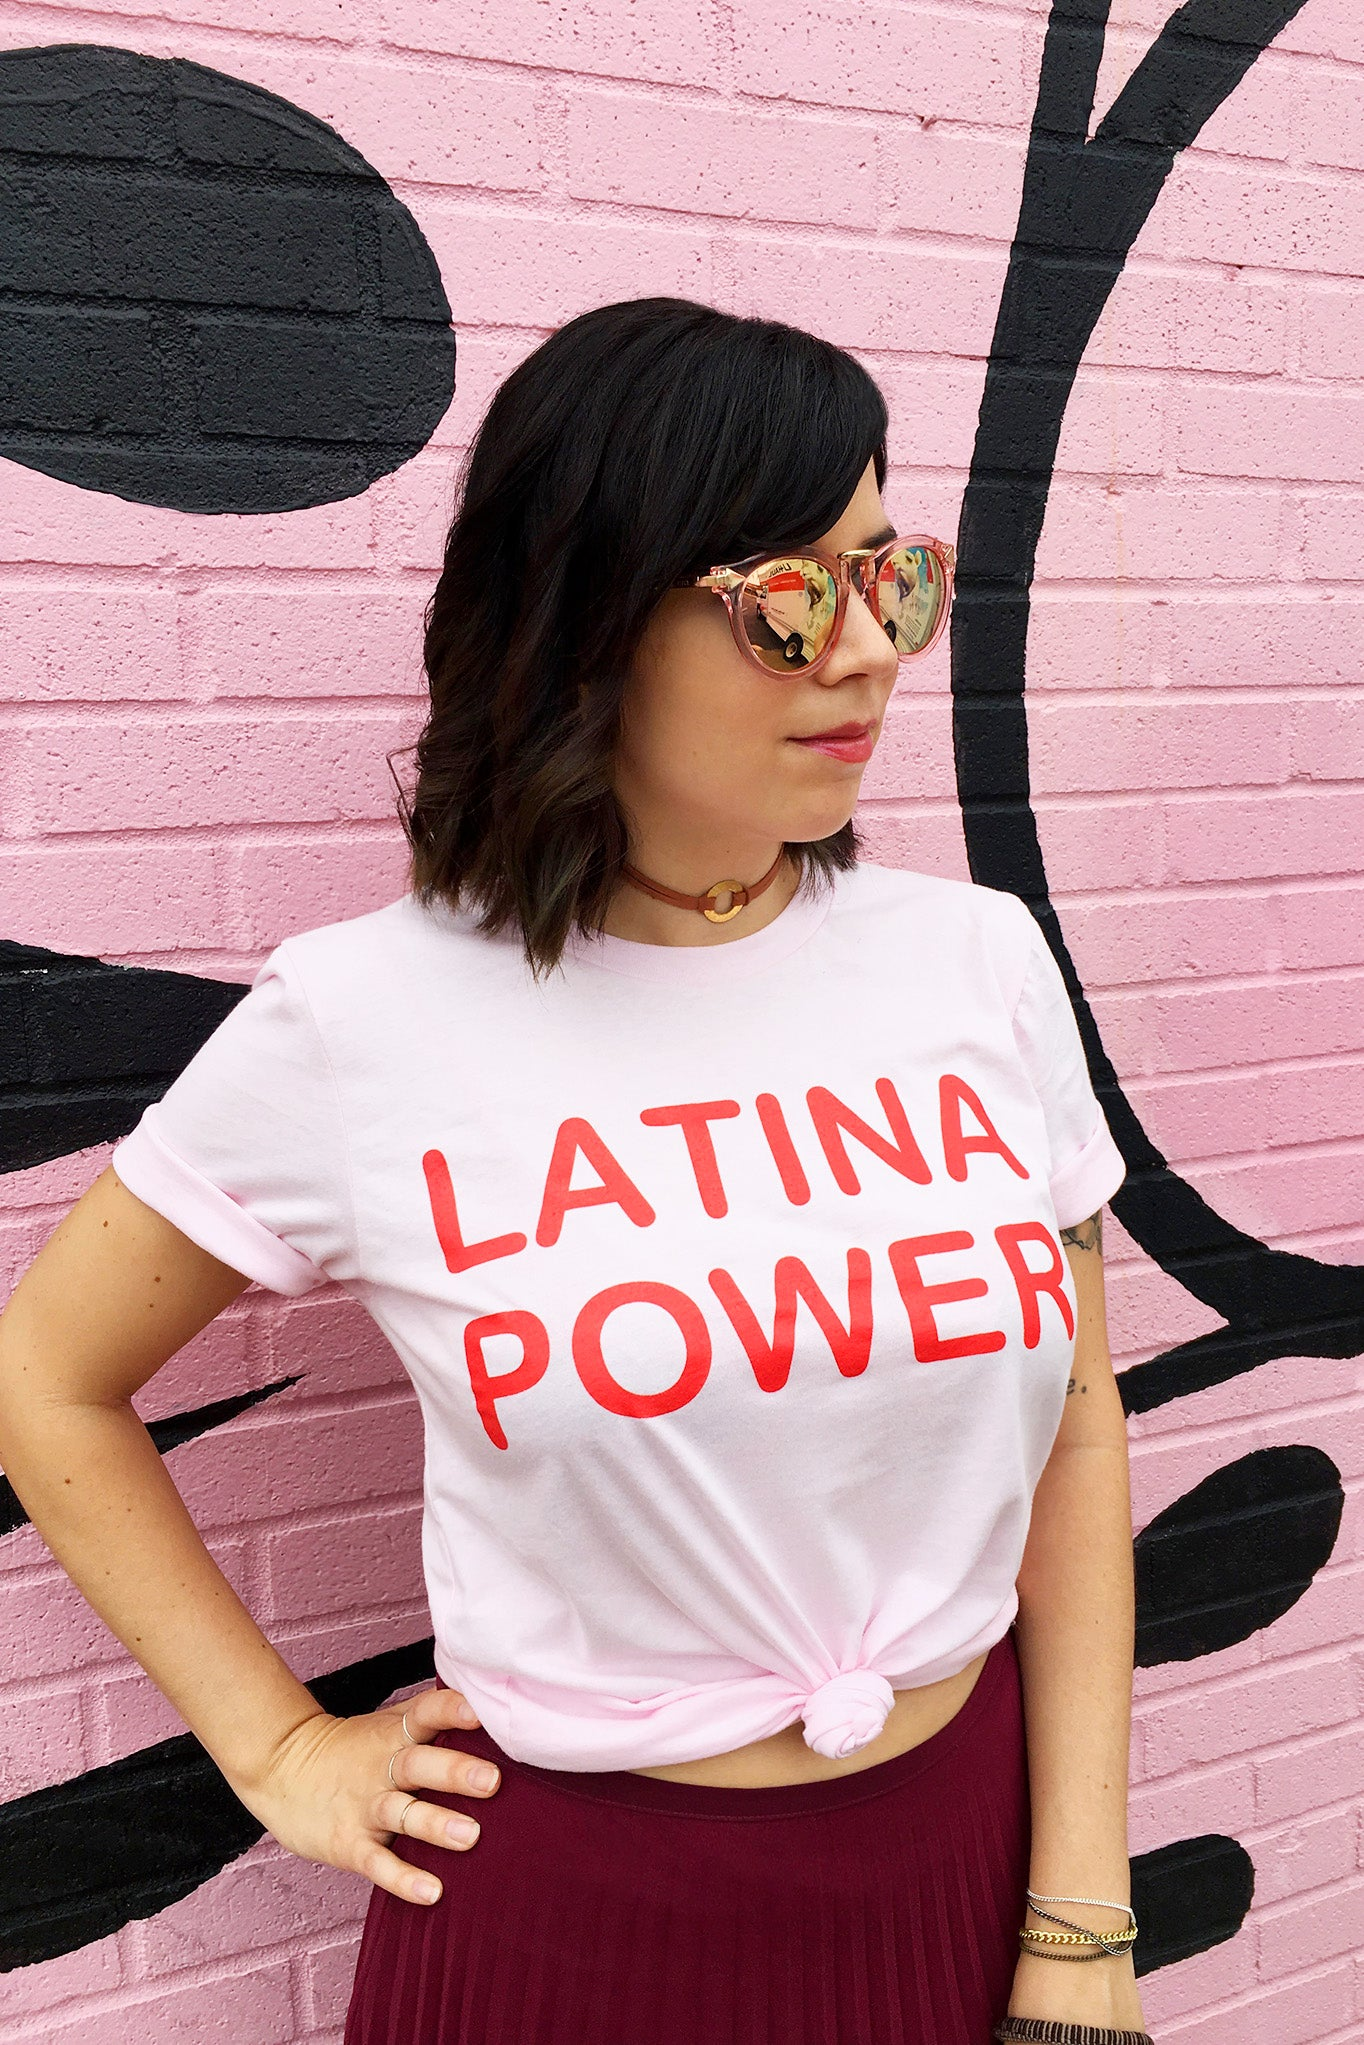 ShopMucho owner styles the Latina Power graphic tee on the blog